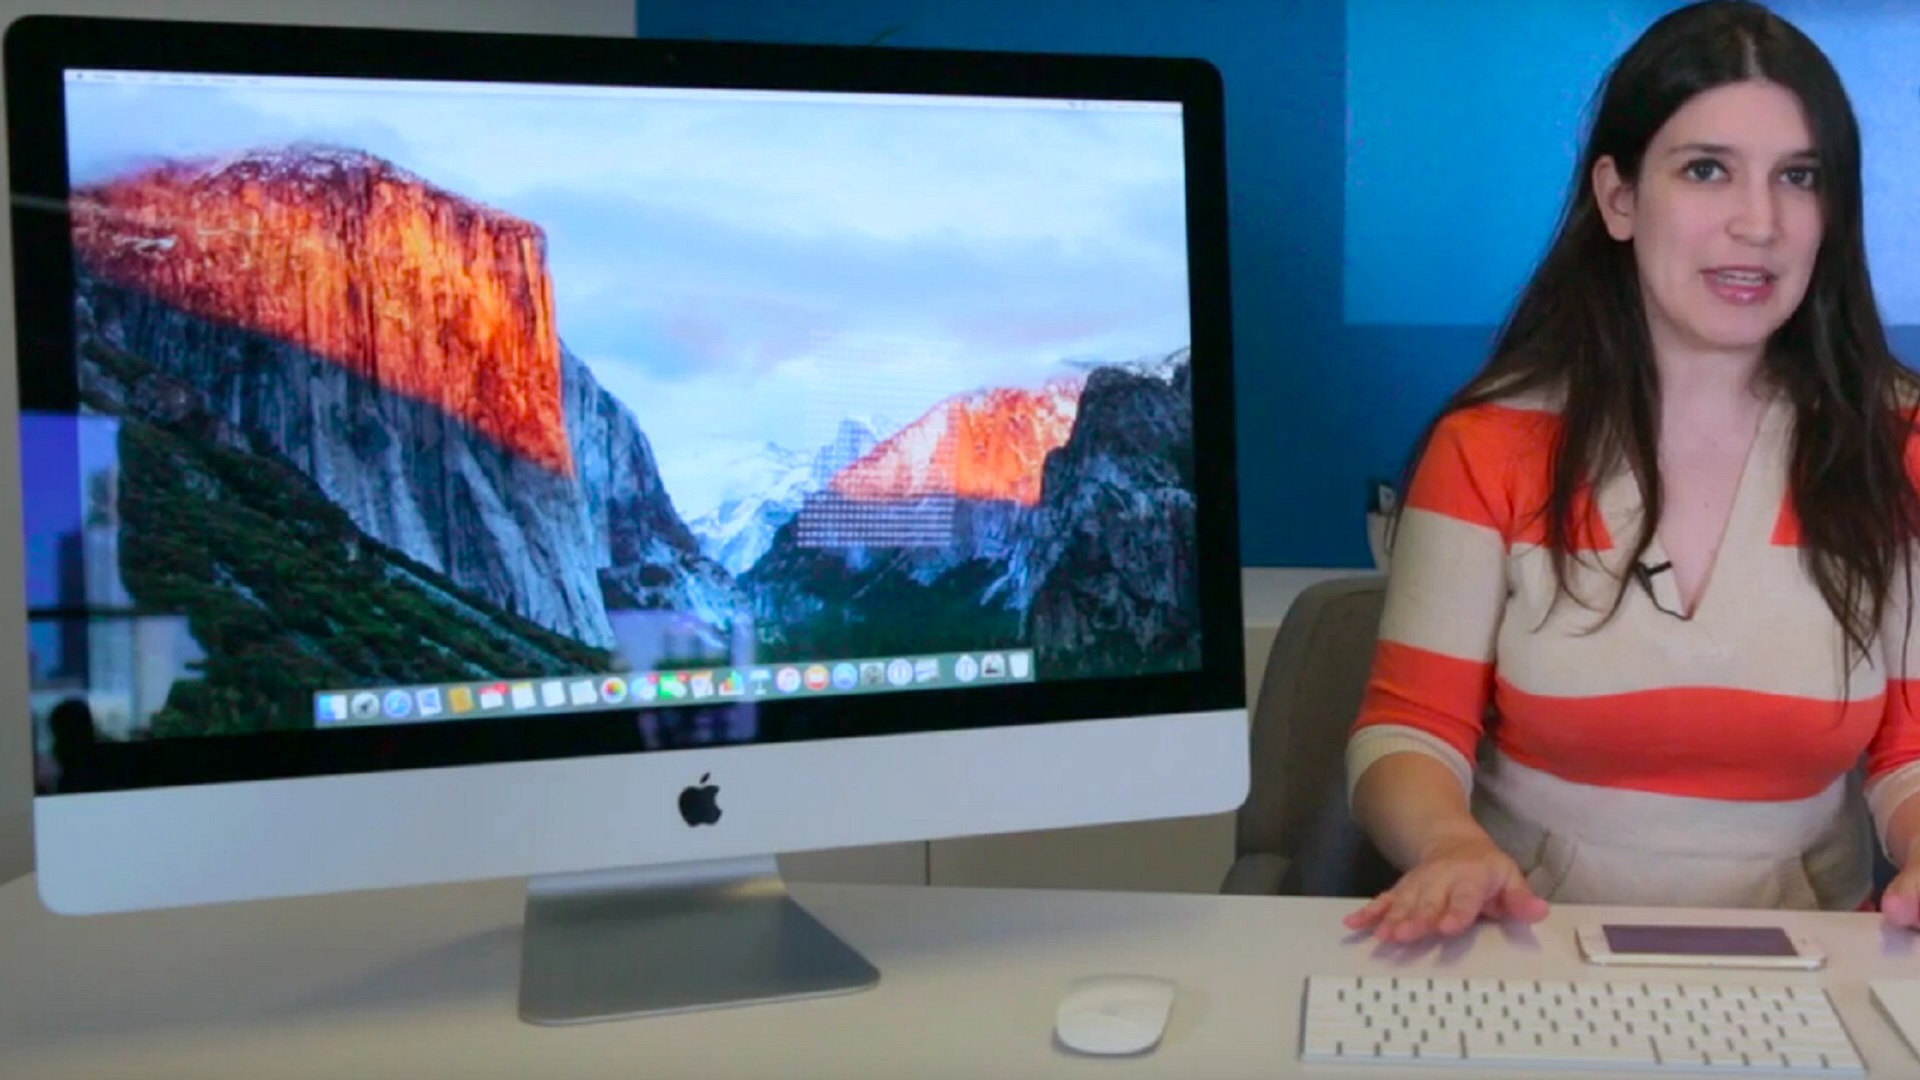 New iMacs and Magic Accessories Attract Positive Reviews